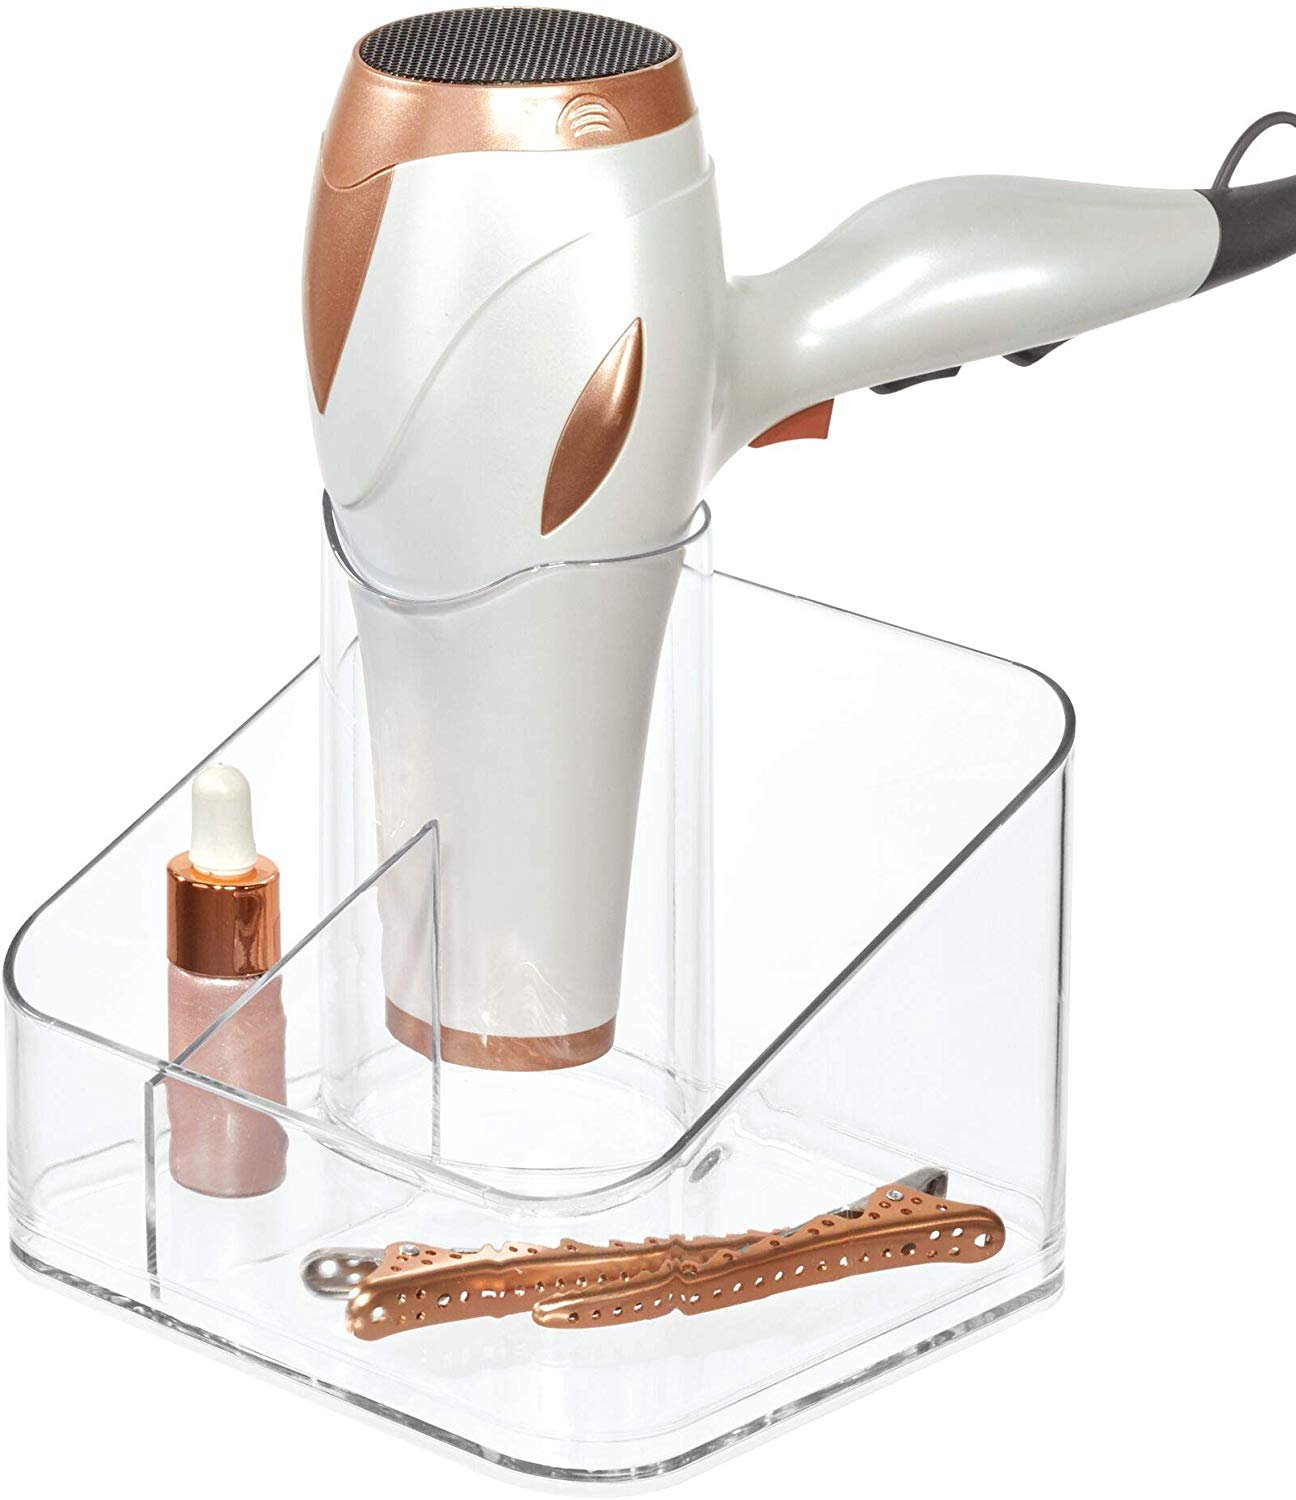 Clarity Countertop Hair Dryer Caddy